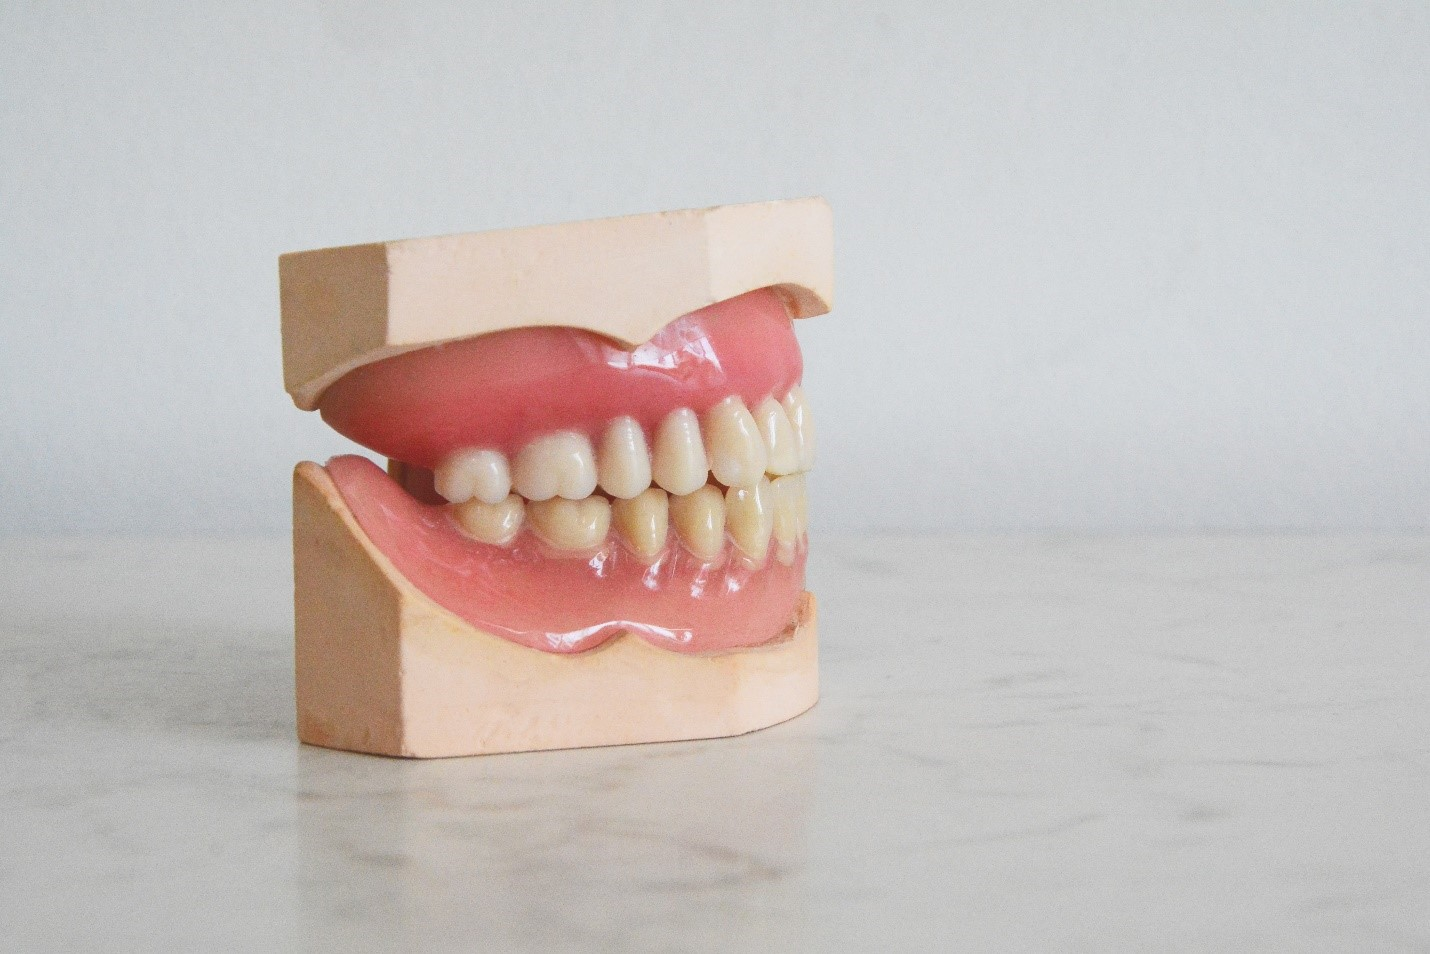 A model of teeth for dentists.